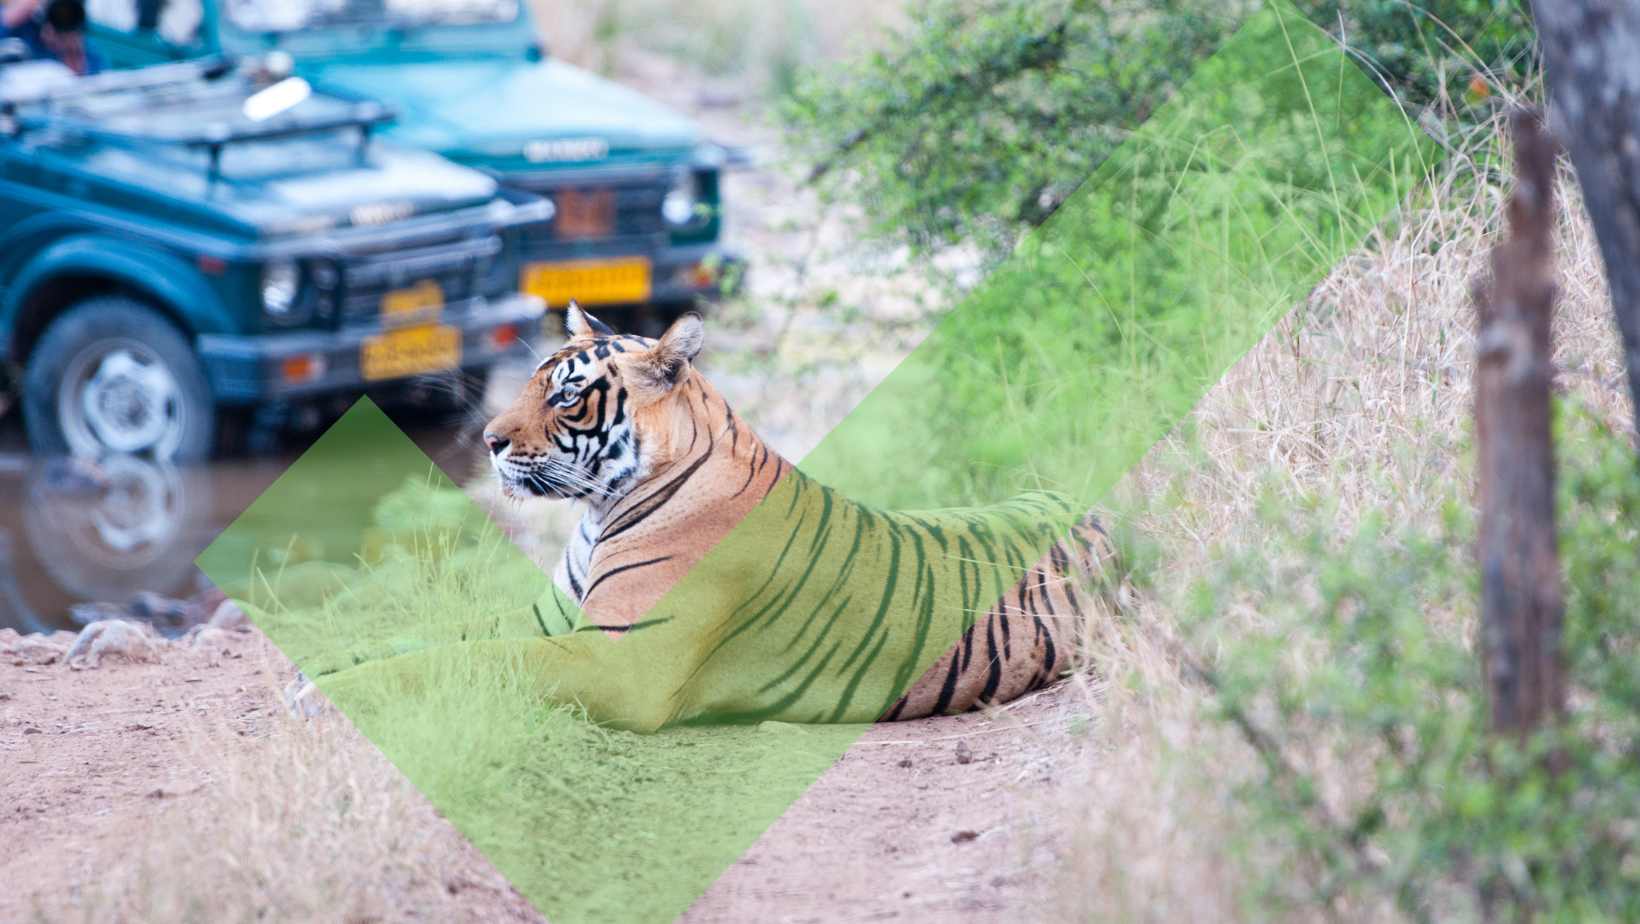 Tiger laying down being viewed from safari jeeps in India